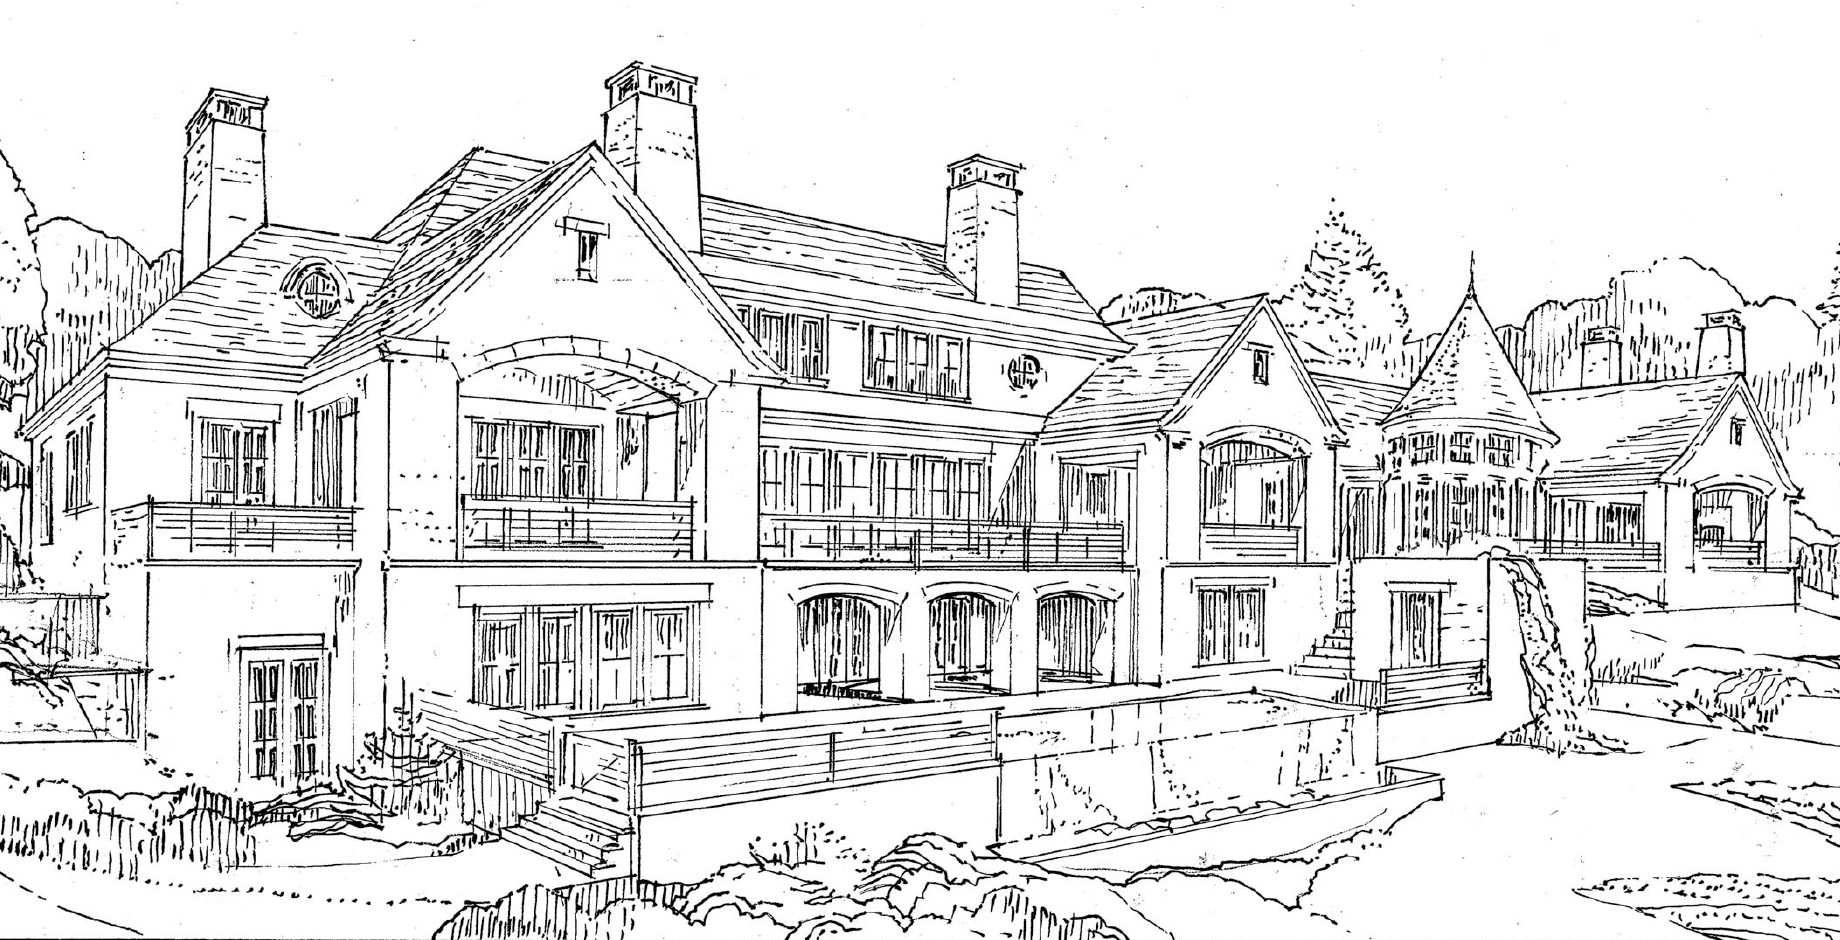 CT Home Design Sketch